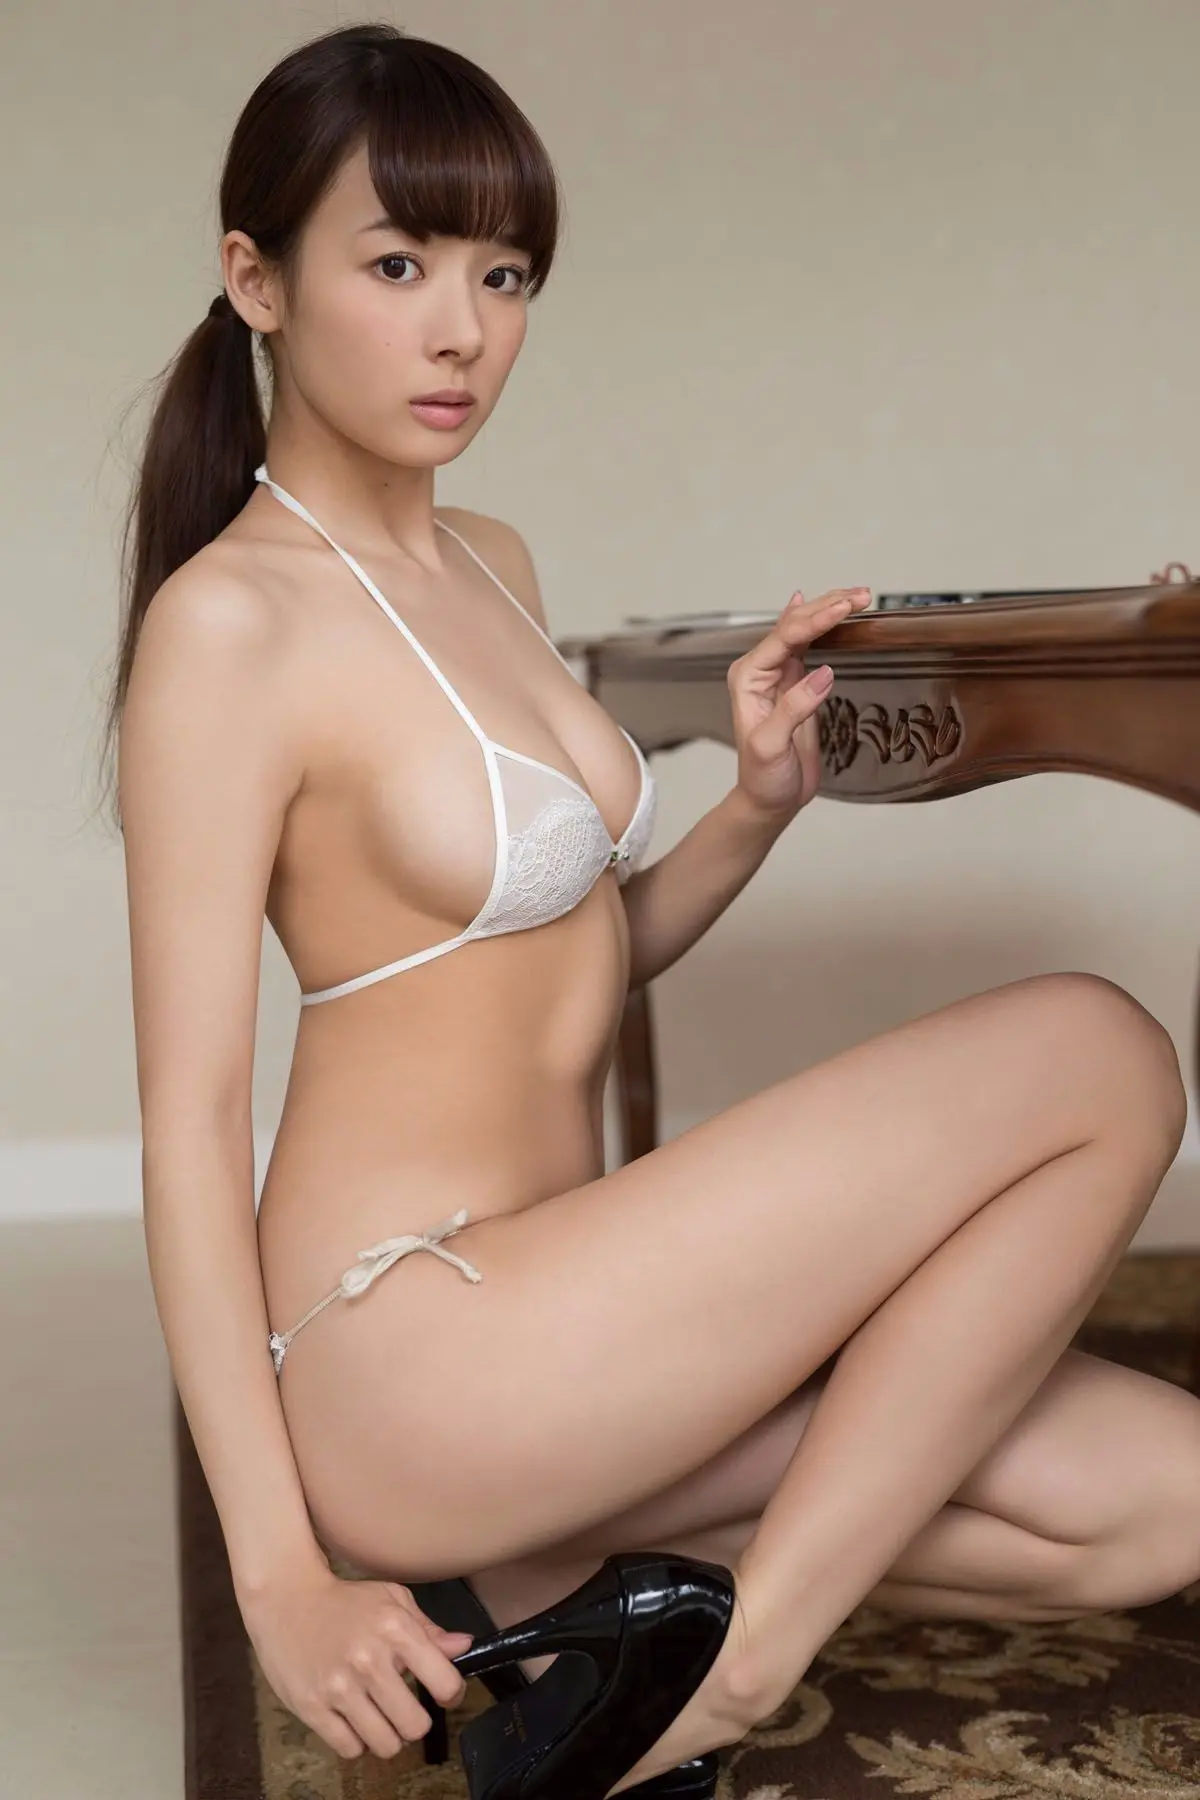 cool Japanese girl in lingerie